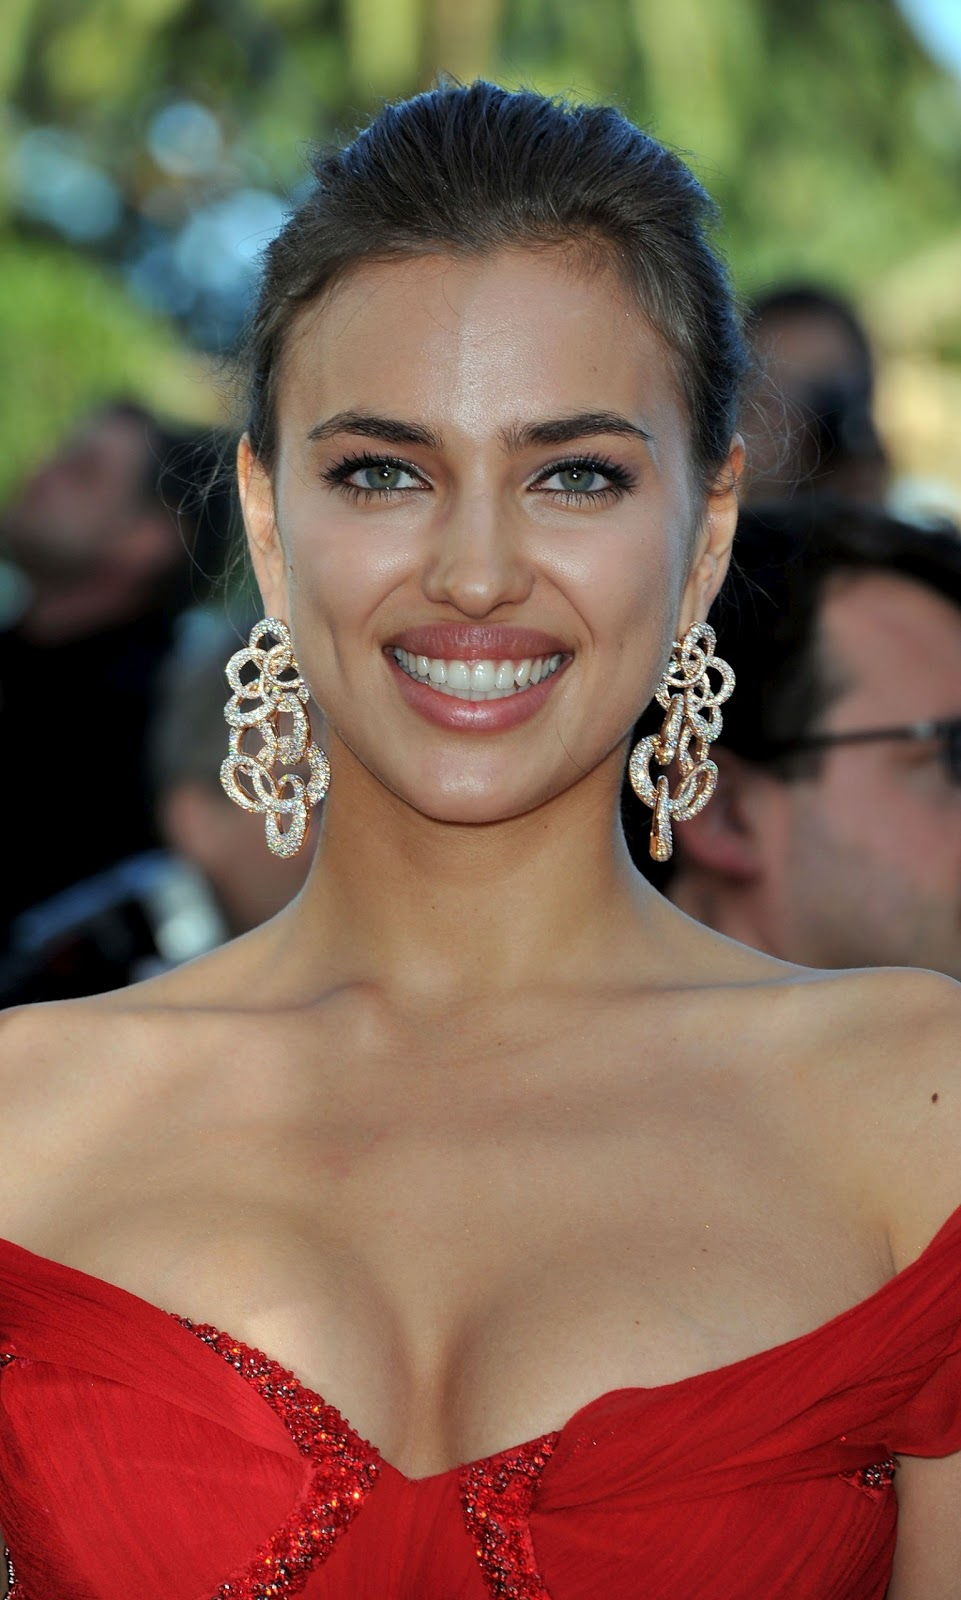 Irina Shayk La Senza Lingerie 2011: Bollytter: Irina Shayk & Kelly Brook Deep Cleavages In Cannes